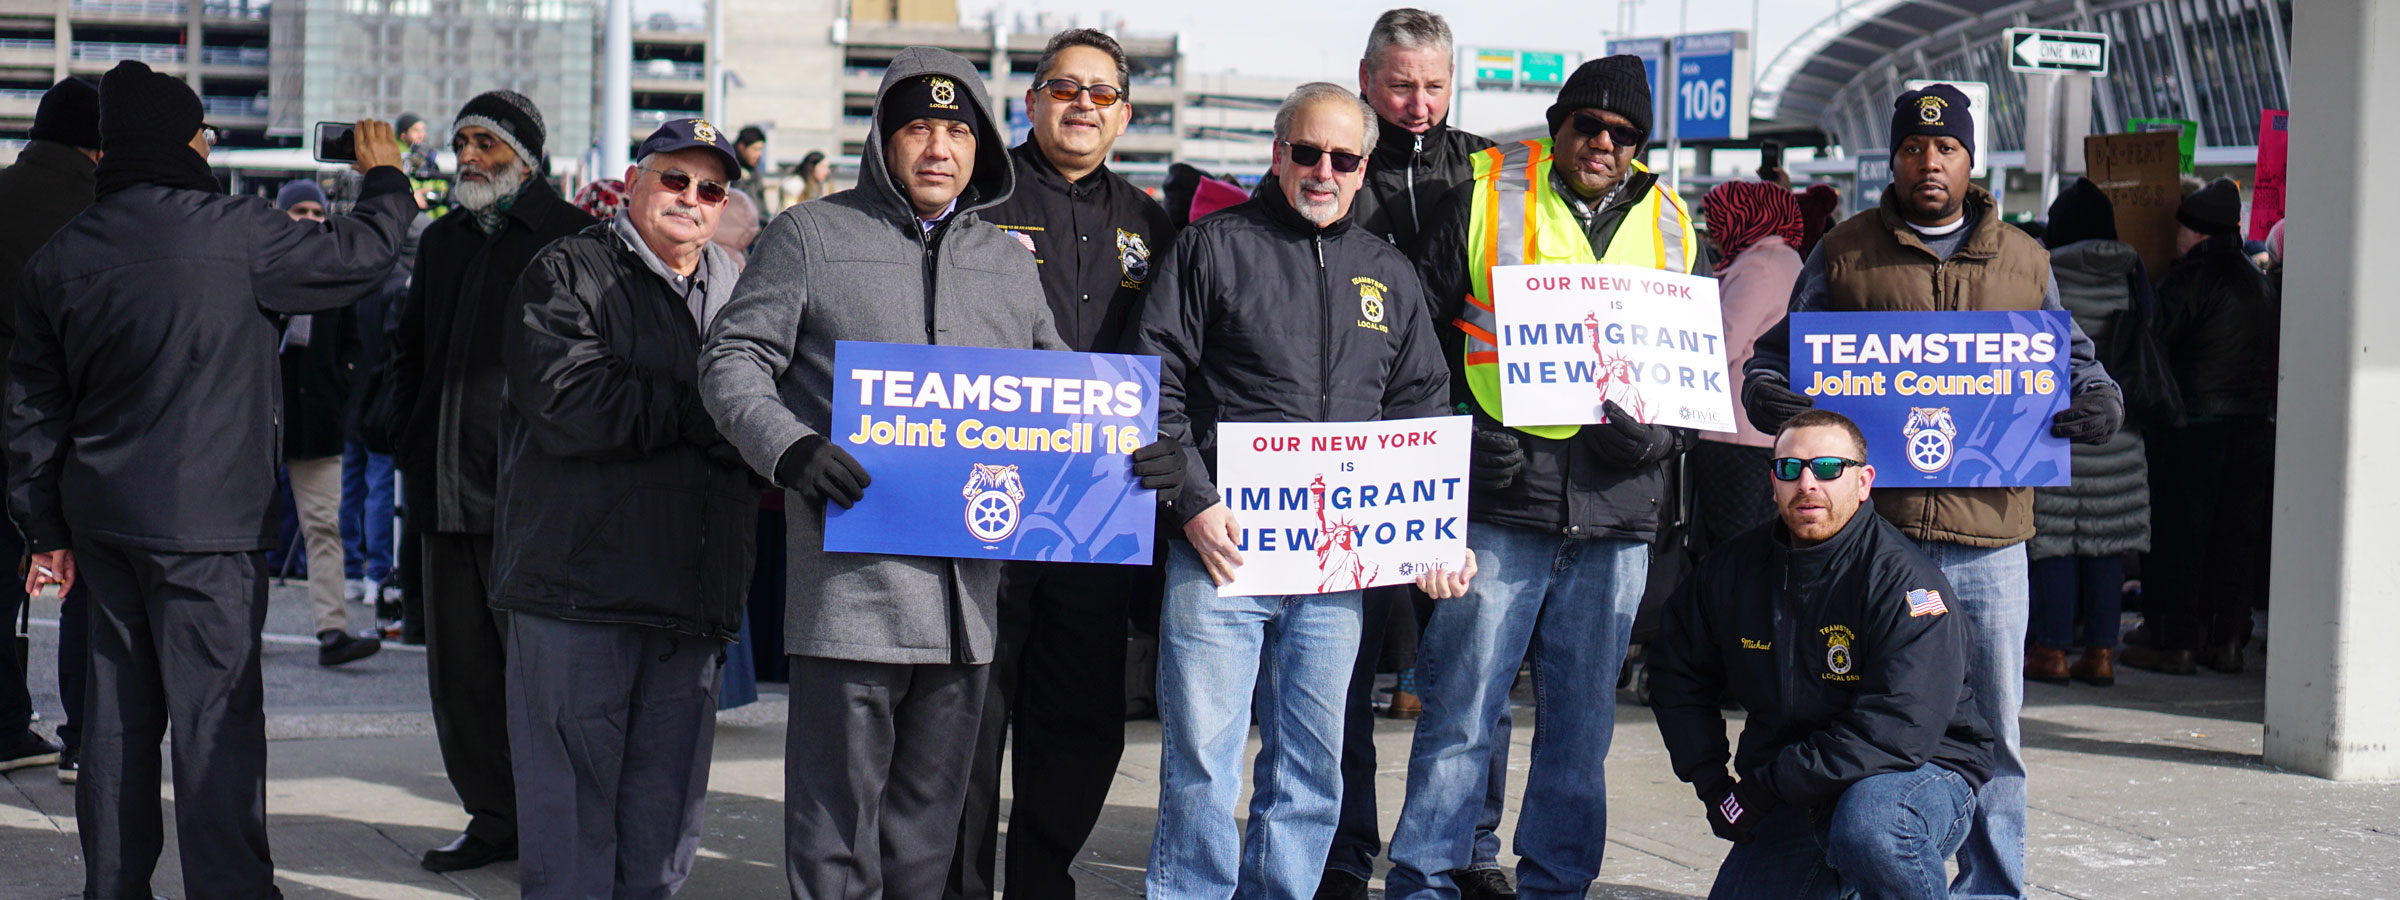 New York Teamsters Stand with Immigrants